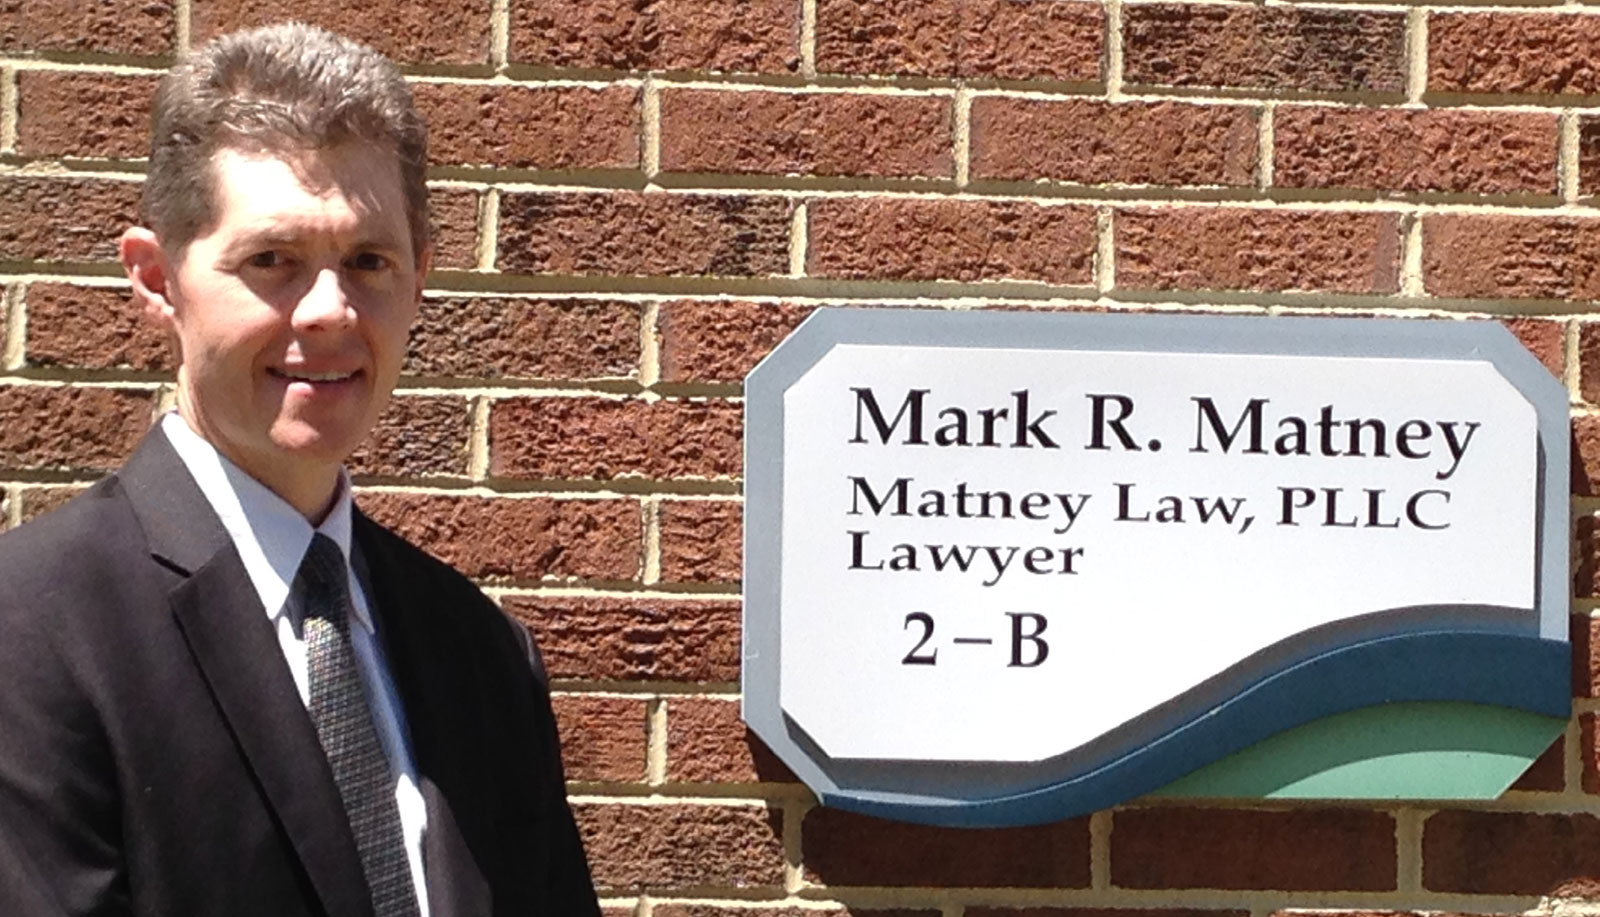 Mark R. Matney - Attorney - Newport News - DUI Attorney